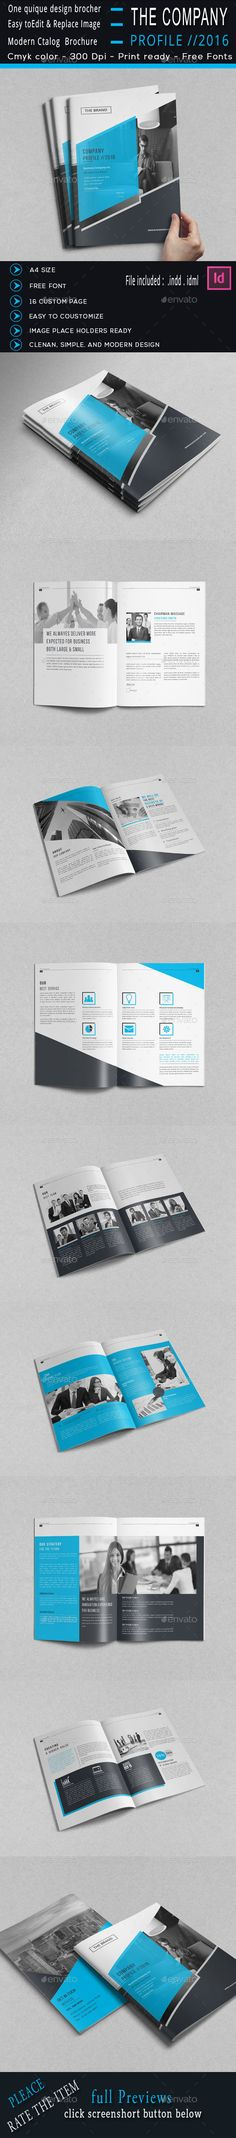 Brochure Description:The Company Profile Brochure Template that is super simple to edit and customize with your own details!Corpo